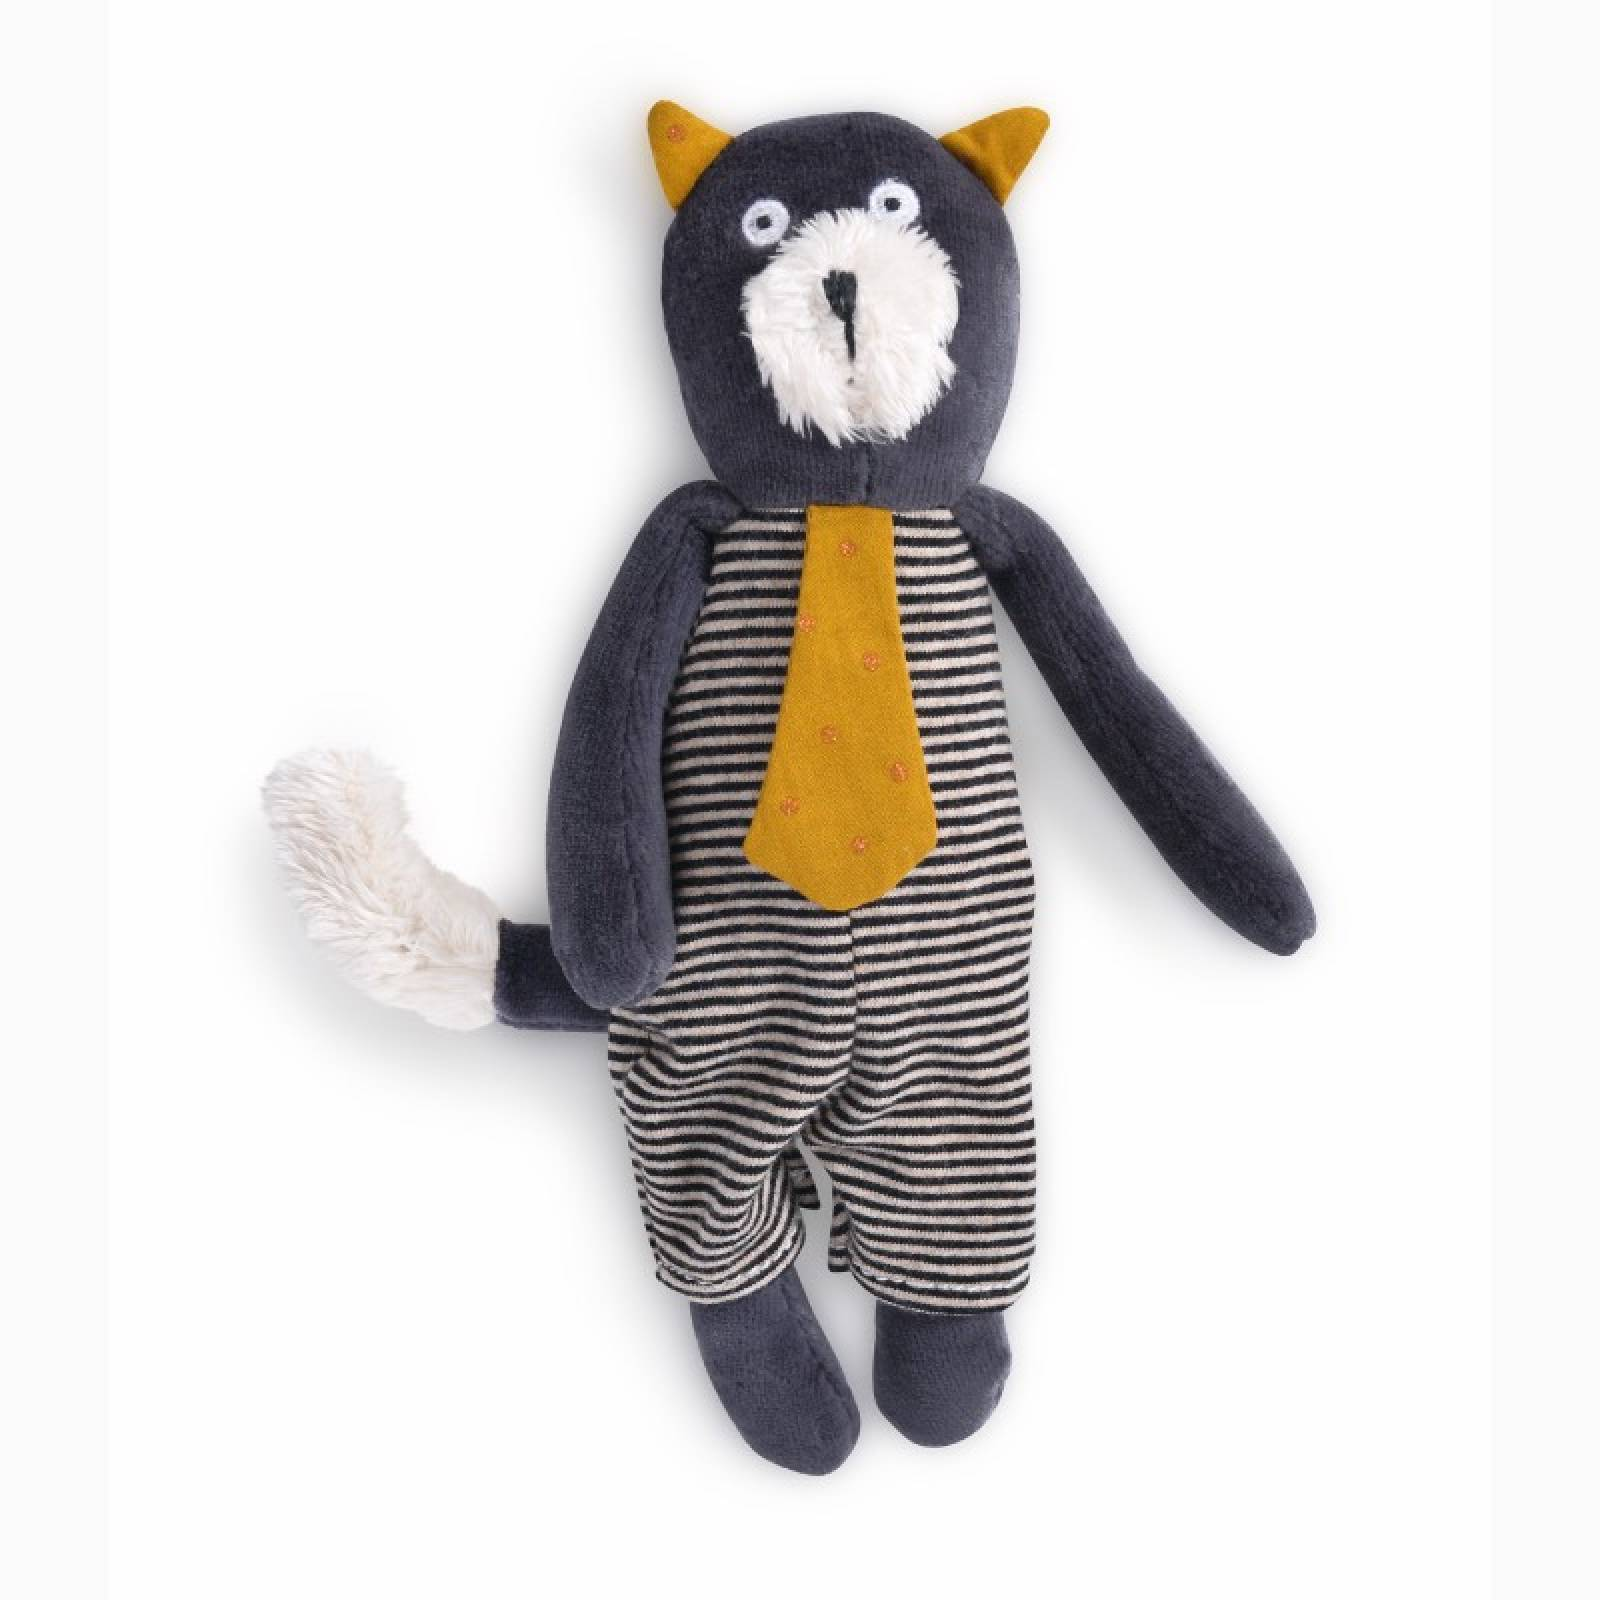 Small Alphonse The Grey Cat Soft Toy Les Moustaches 0+